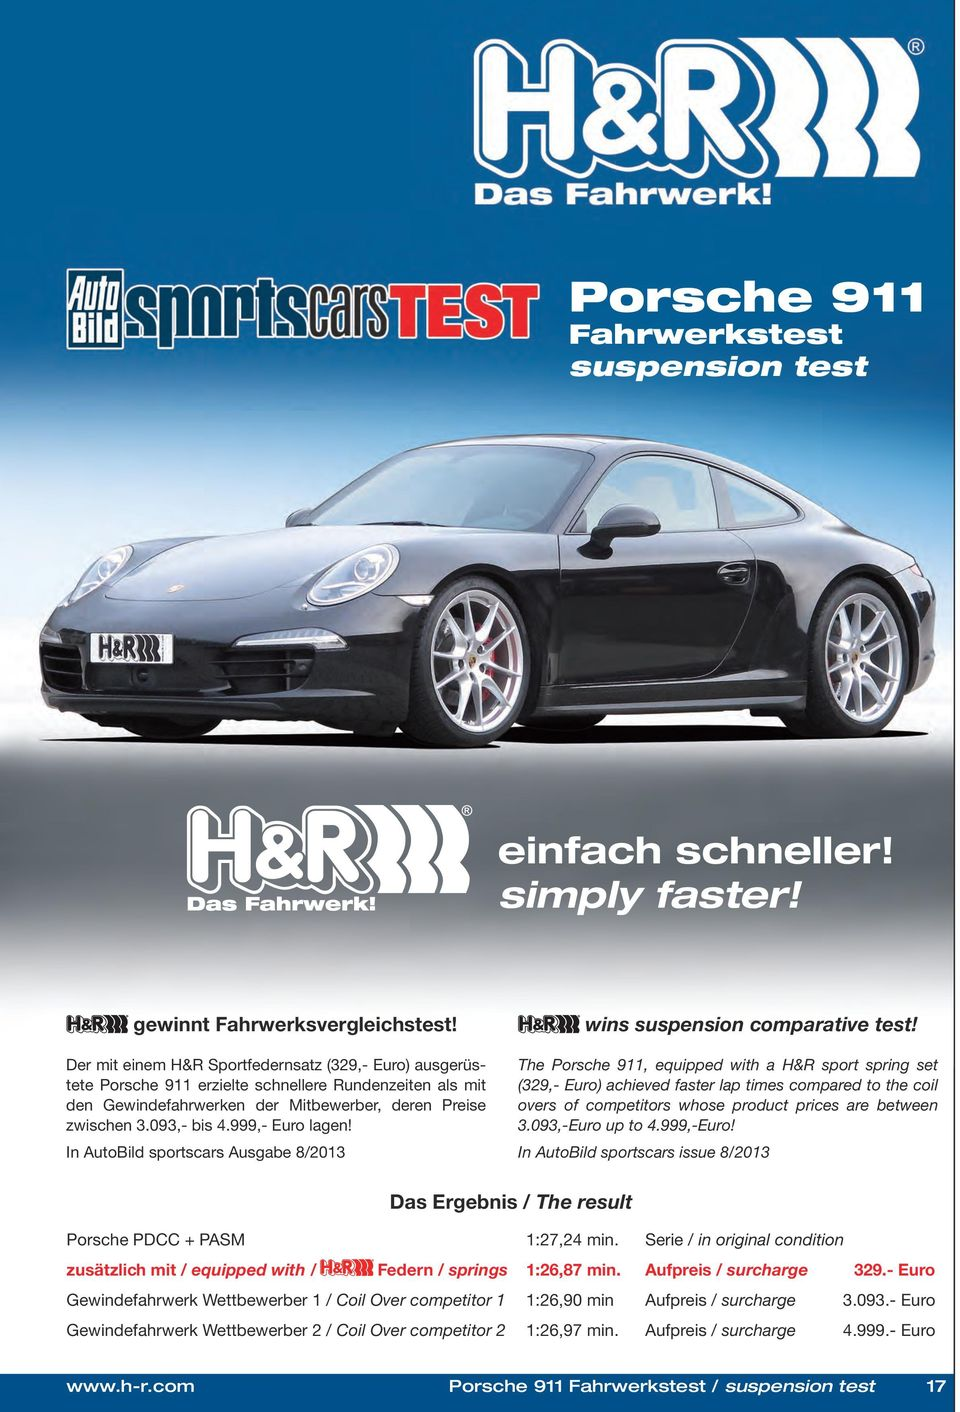 999,- Euro lagen! In AutoBild sportscars Ausgabe 8/2013 wins suspension comparative test!